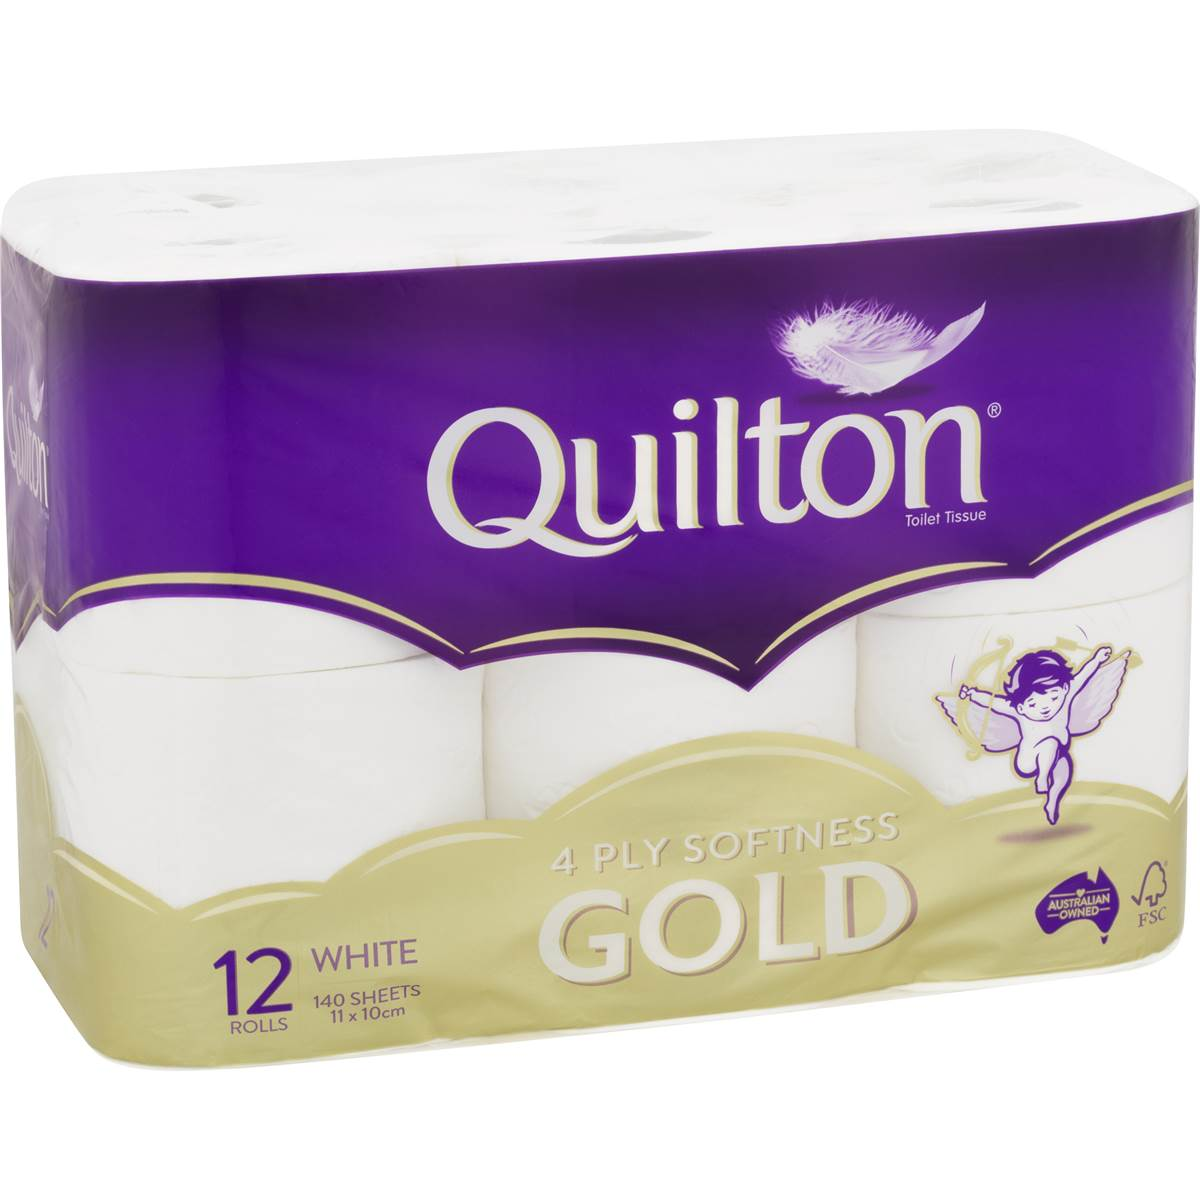 quilton gold toilet paper 12pk woolworths